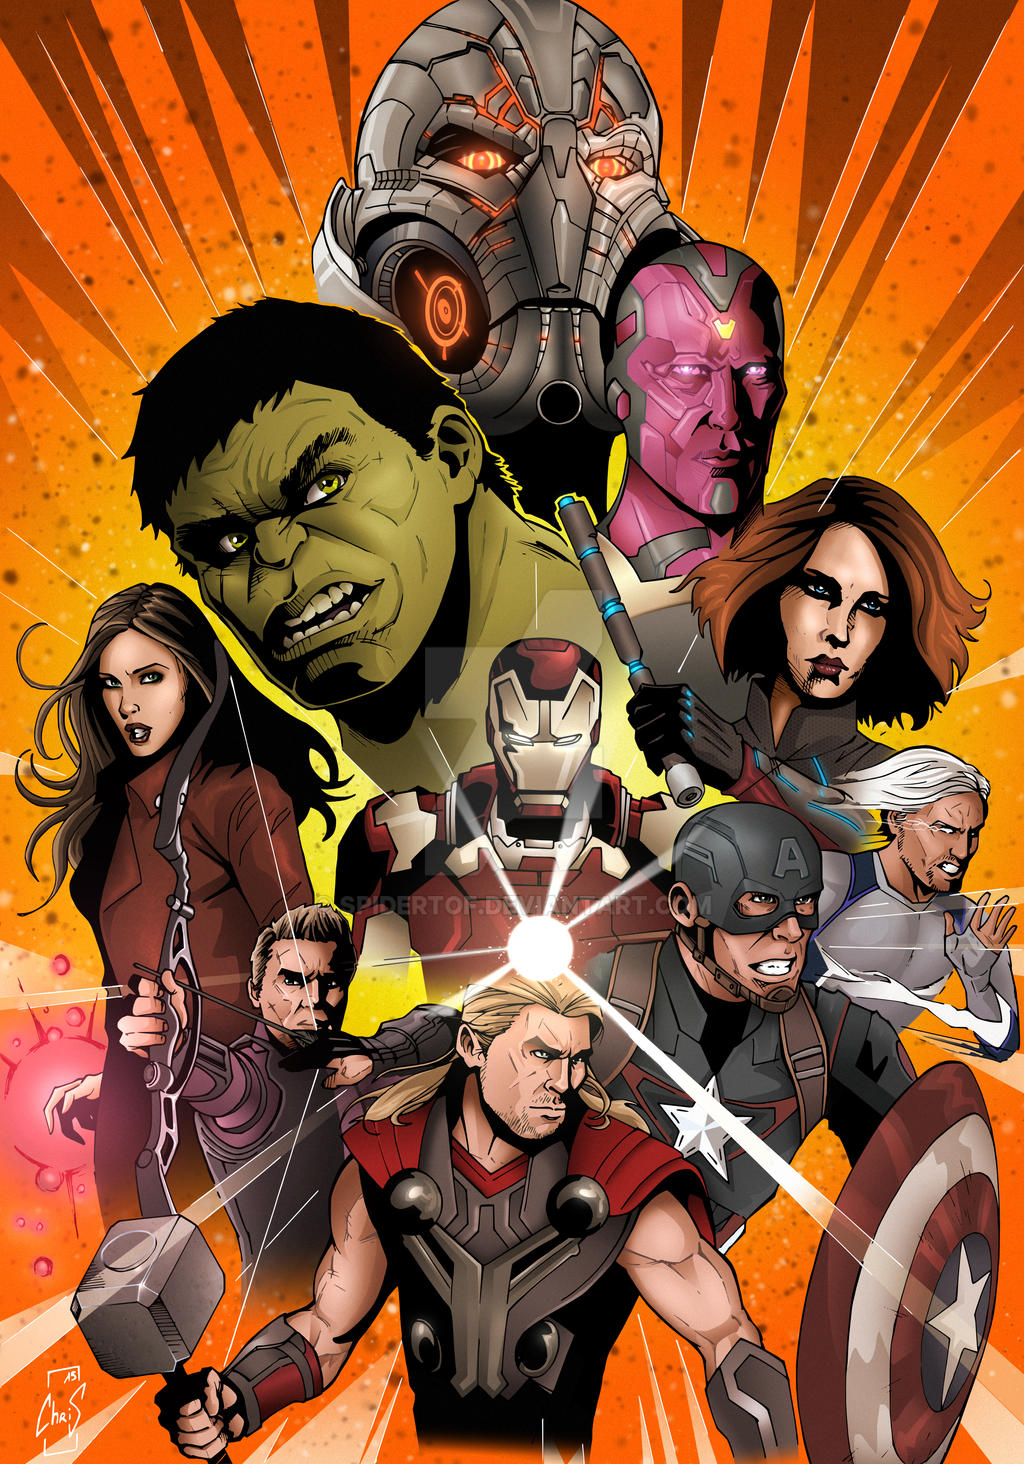 Avengers Age Of Ultron By Iloegbunam On Deviantart: Age Of Ultron By Spidertof On DeviantArt